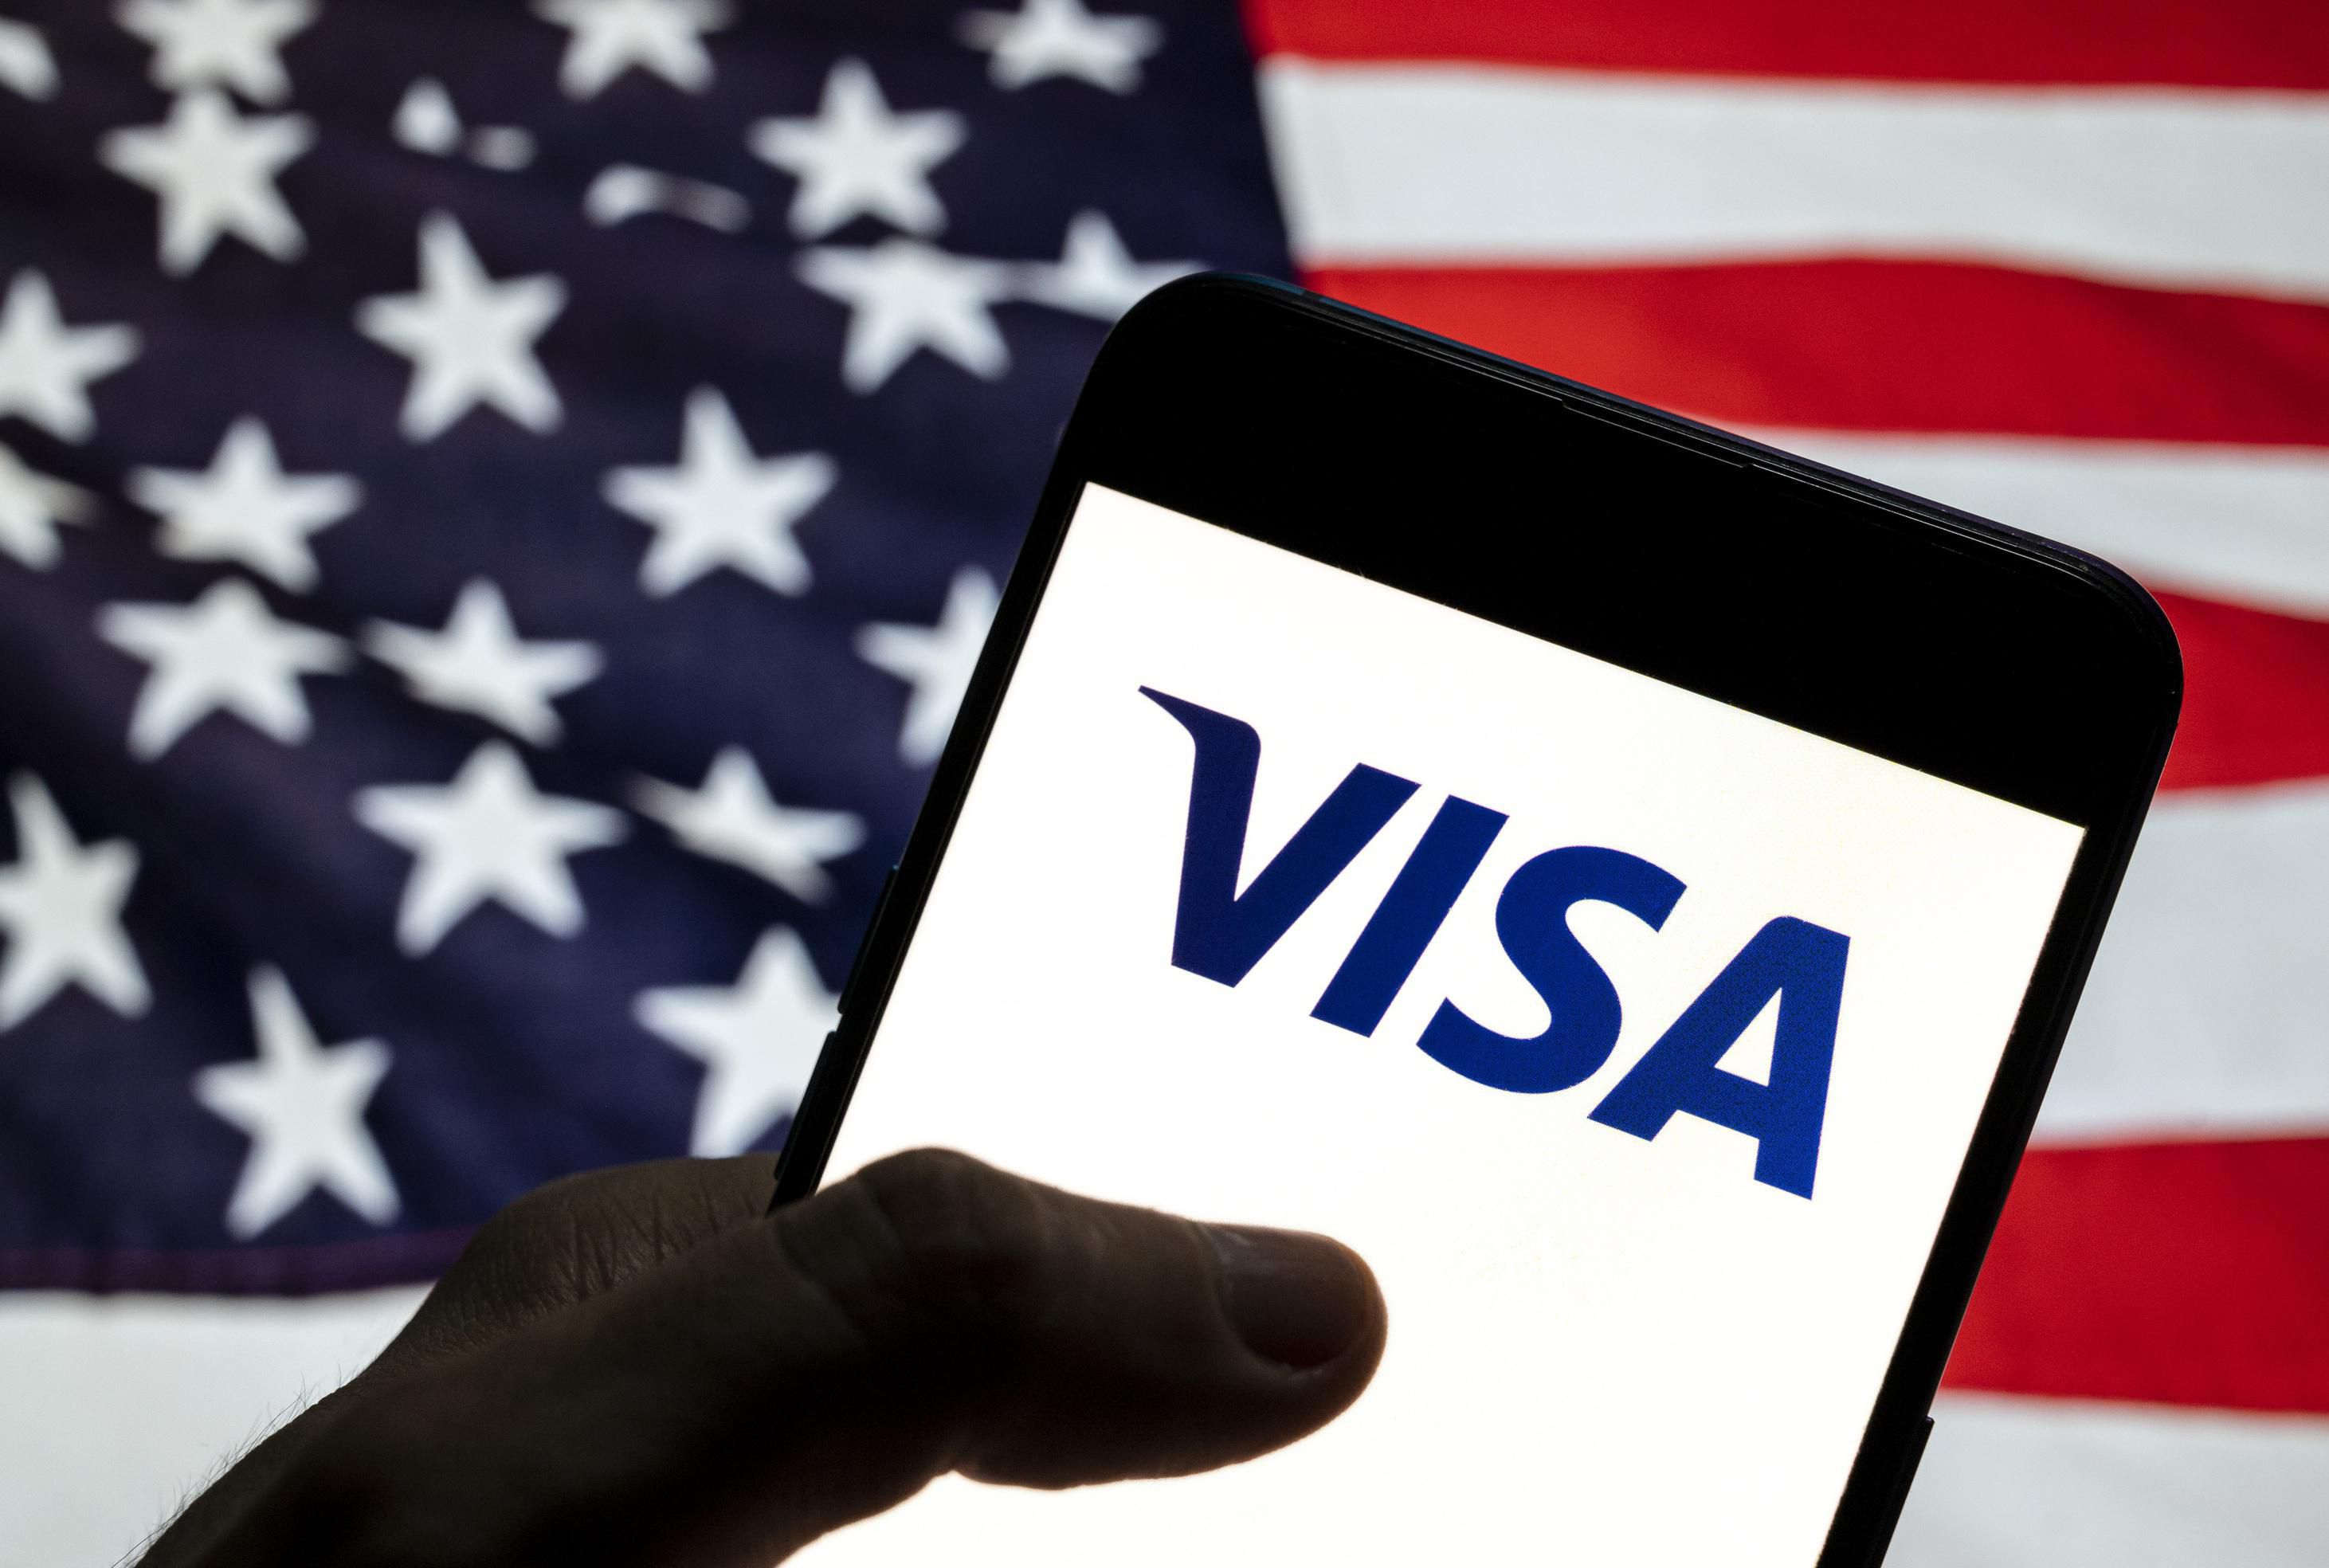 Forecast Of The Day: Visa's Payments Volume Per Card